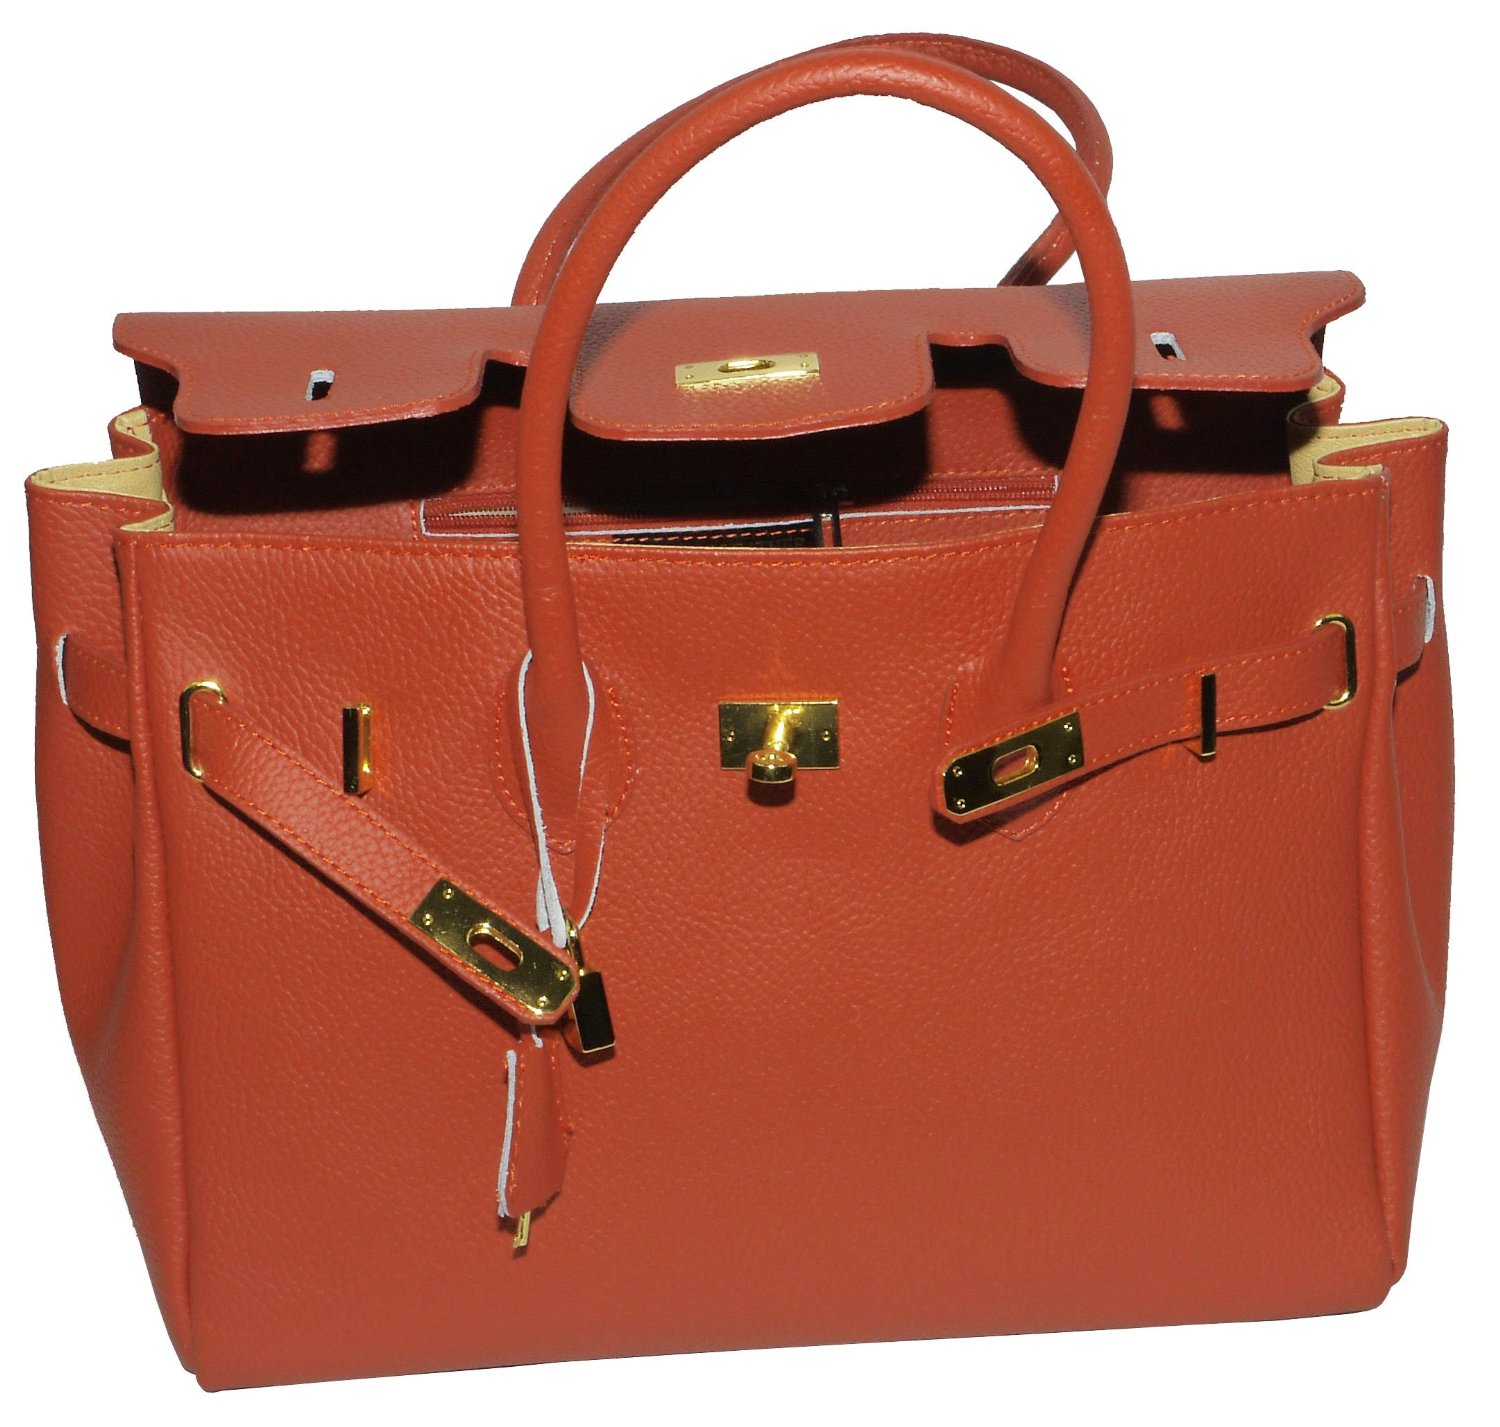 http://www.conmigolondon.co.uk/ekmps/shops/conmigo/images/1a.-real-italian-leather-brealleather-0012-big-tangerine-real-leather-bag-made-in-florence-italy.-%5B3%5D-2409-p.jpg